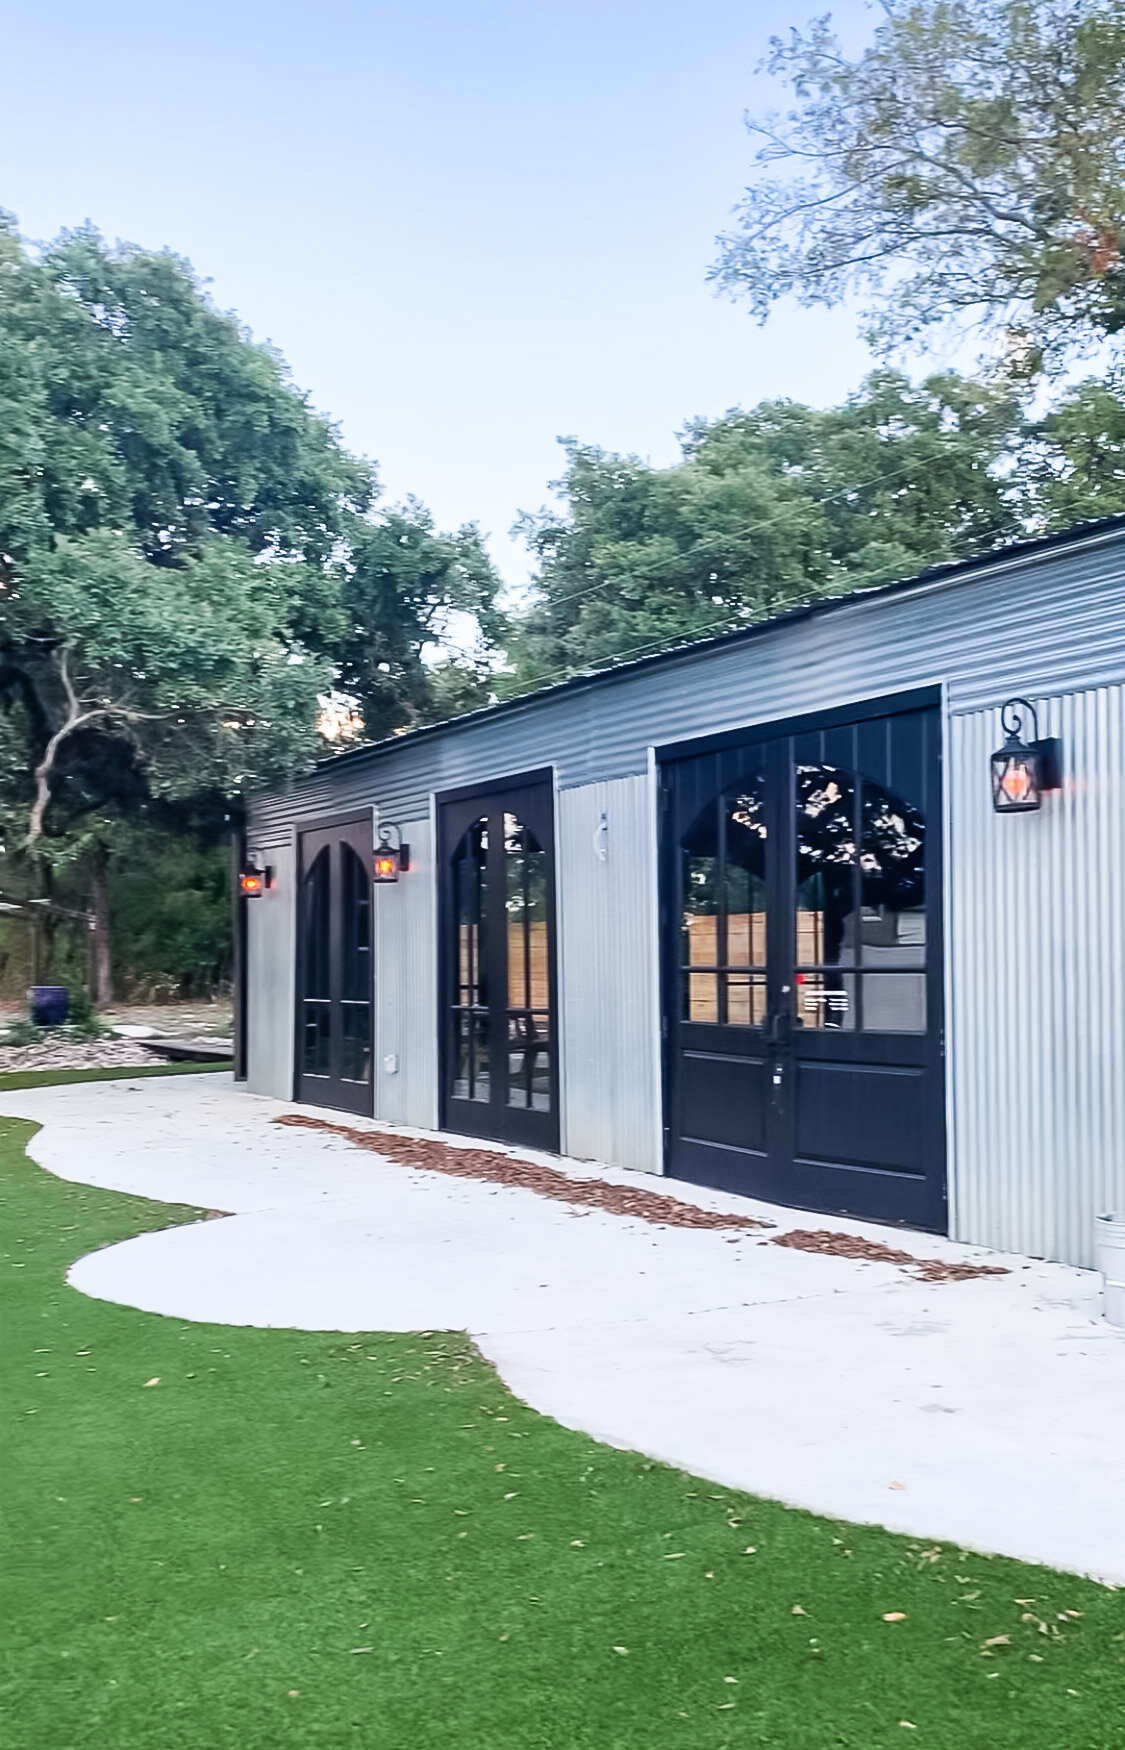 The exterior of the barn, with more of Willie's doors. I love the cute curved foundation! That's astroturf, not real grass.